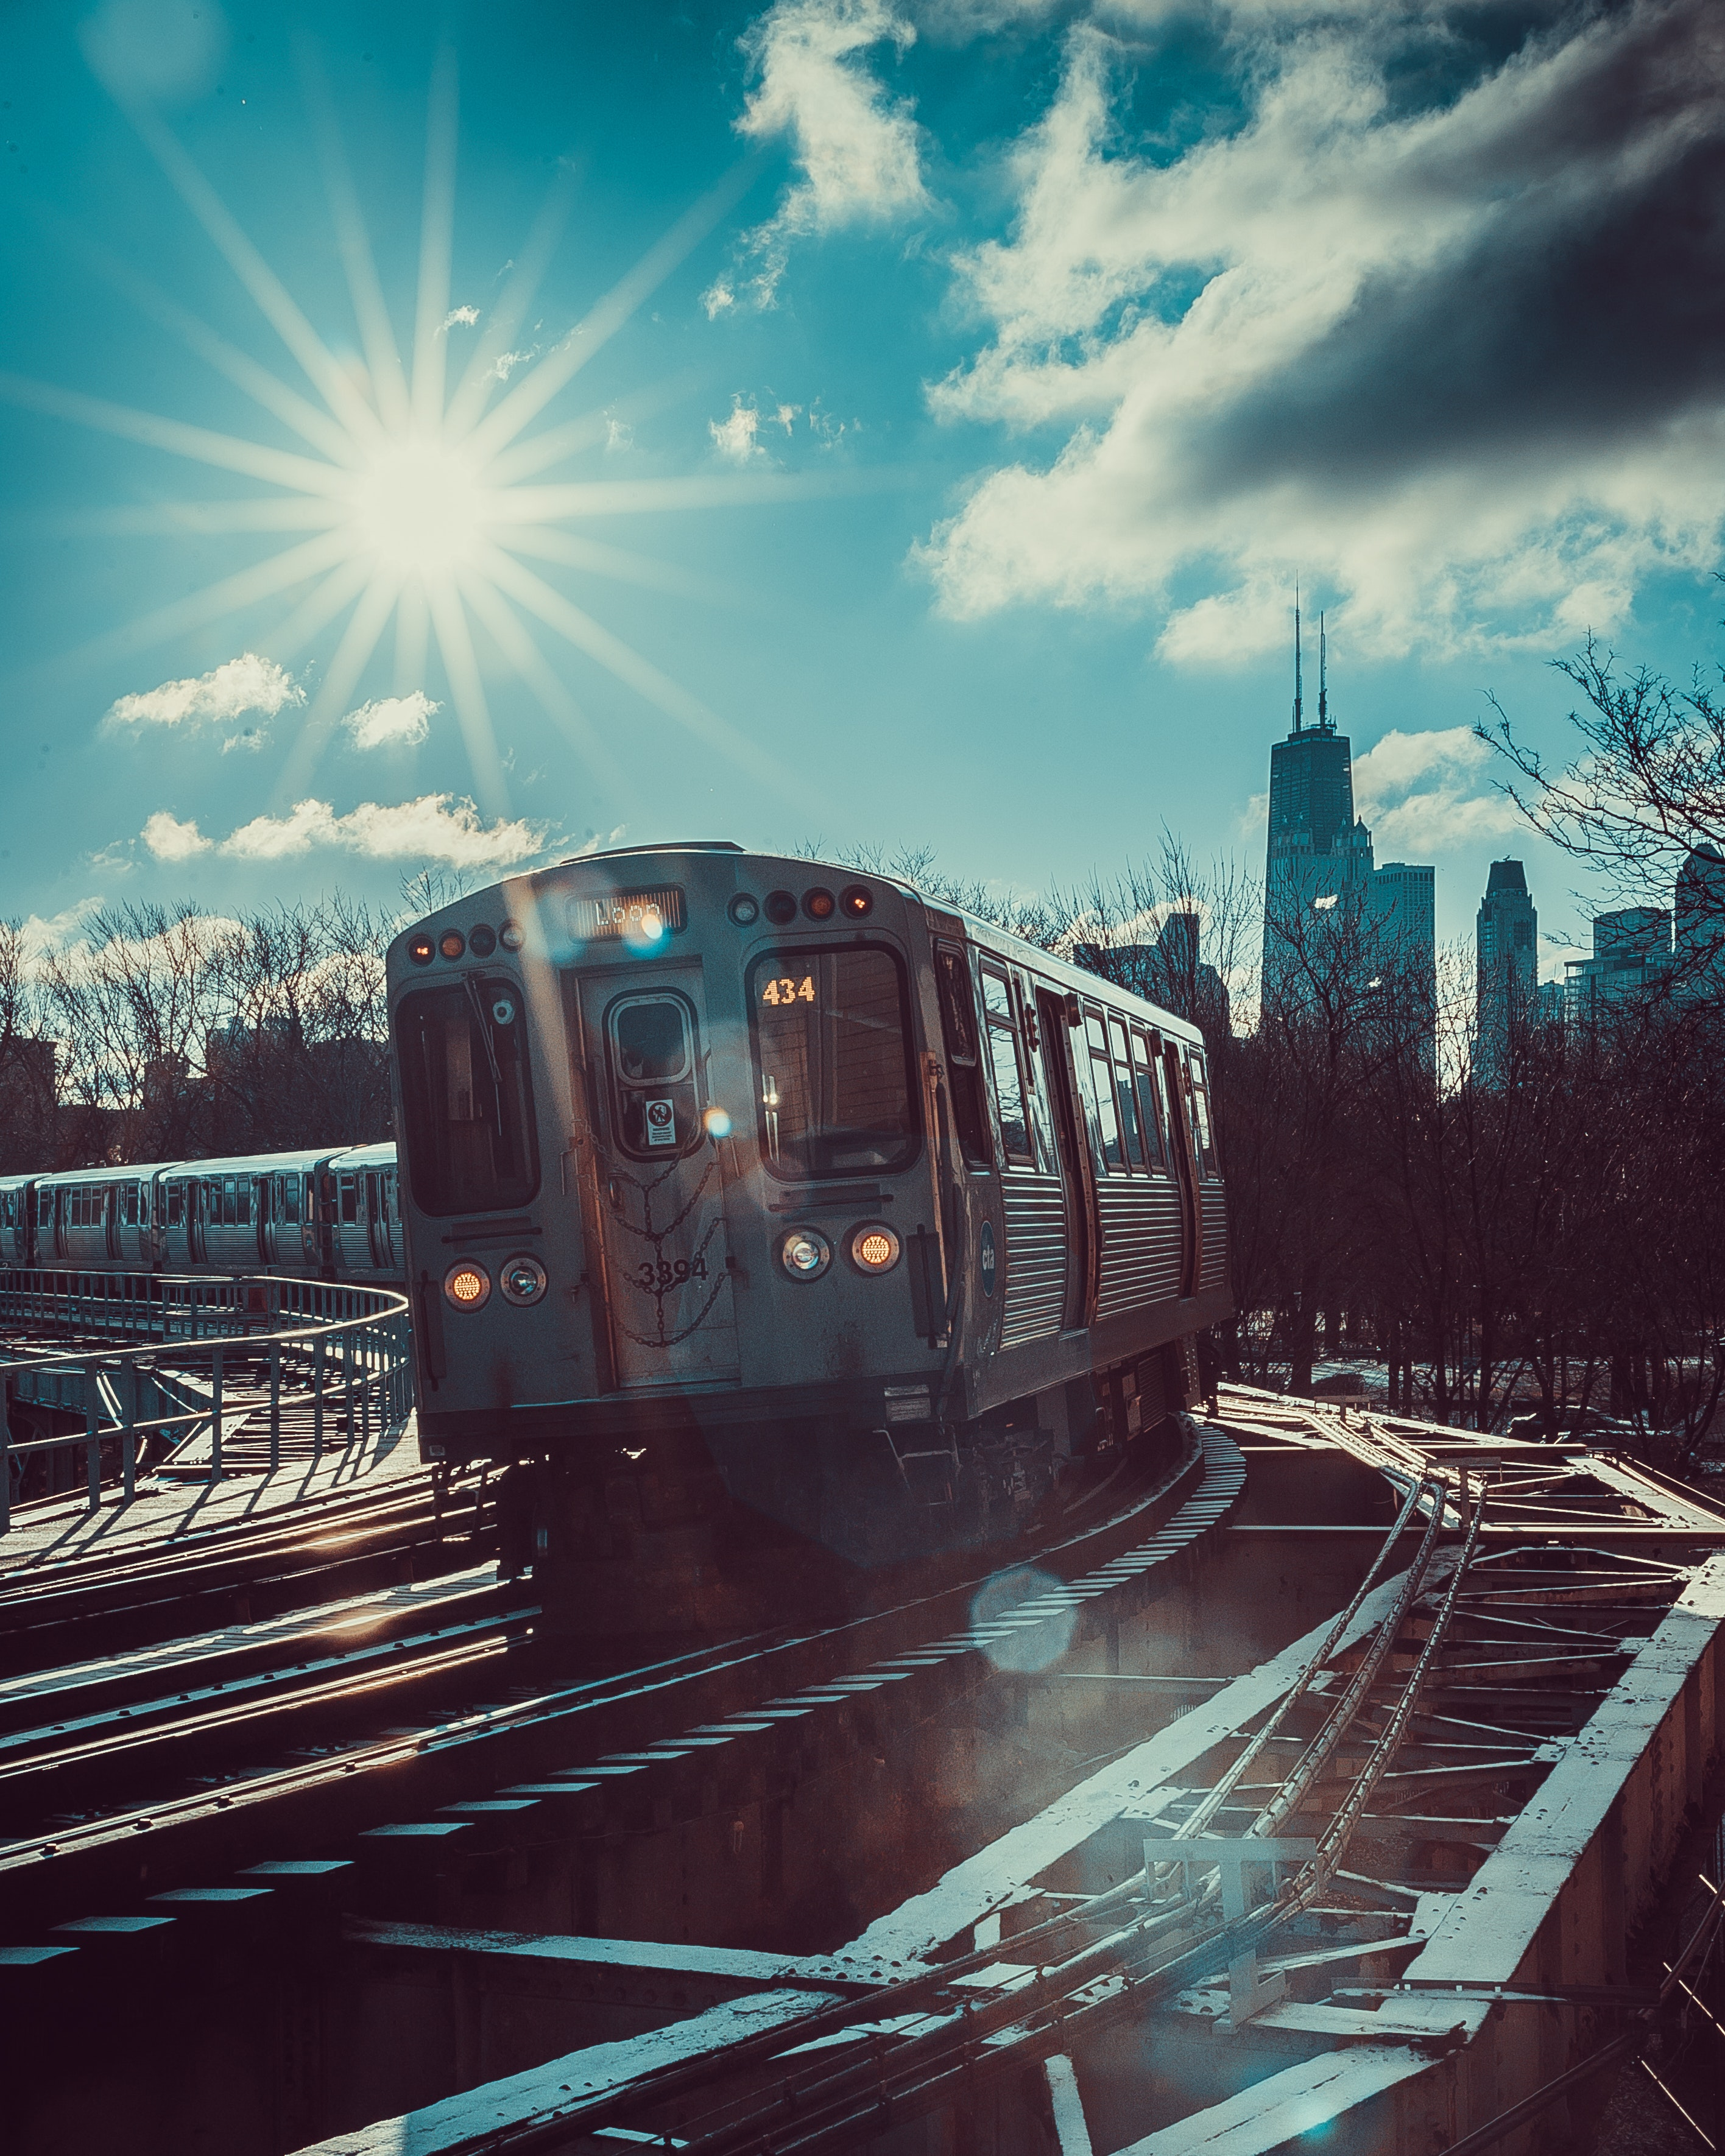 56056 download wallpaper Miscellanea, Miscellaneous, Train, Railway, Railway Carriage, Car, Sunlight, Traffic, Movement screensavers and pictures for free